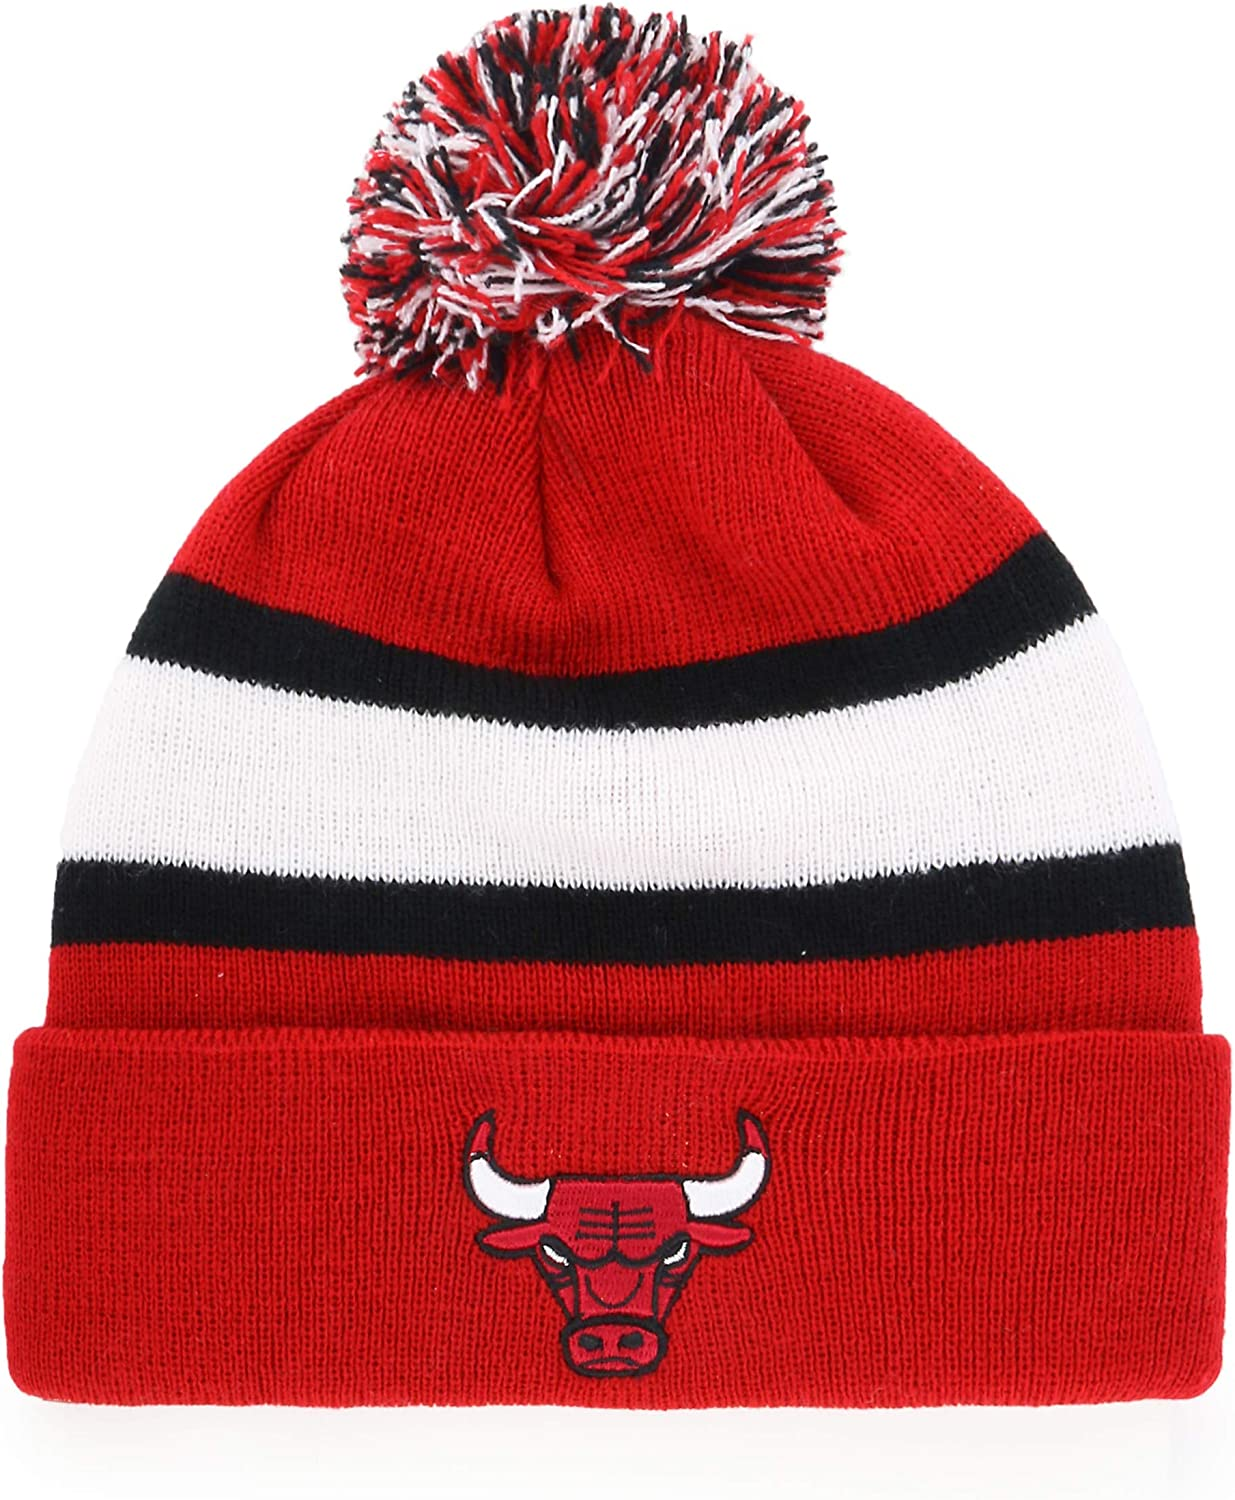 OTS NBA Youth Rush Down Cuff Knit Cap with Pom